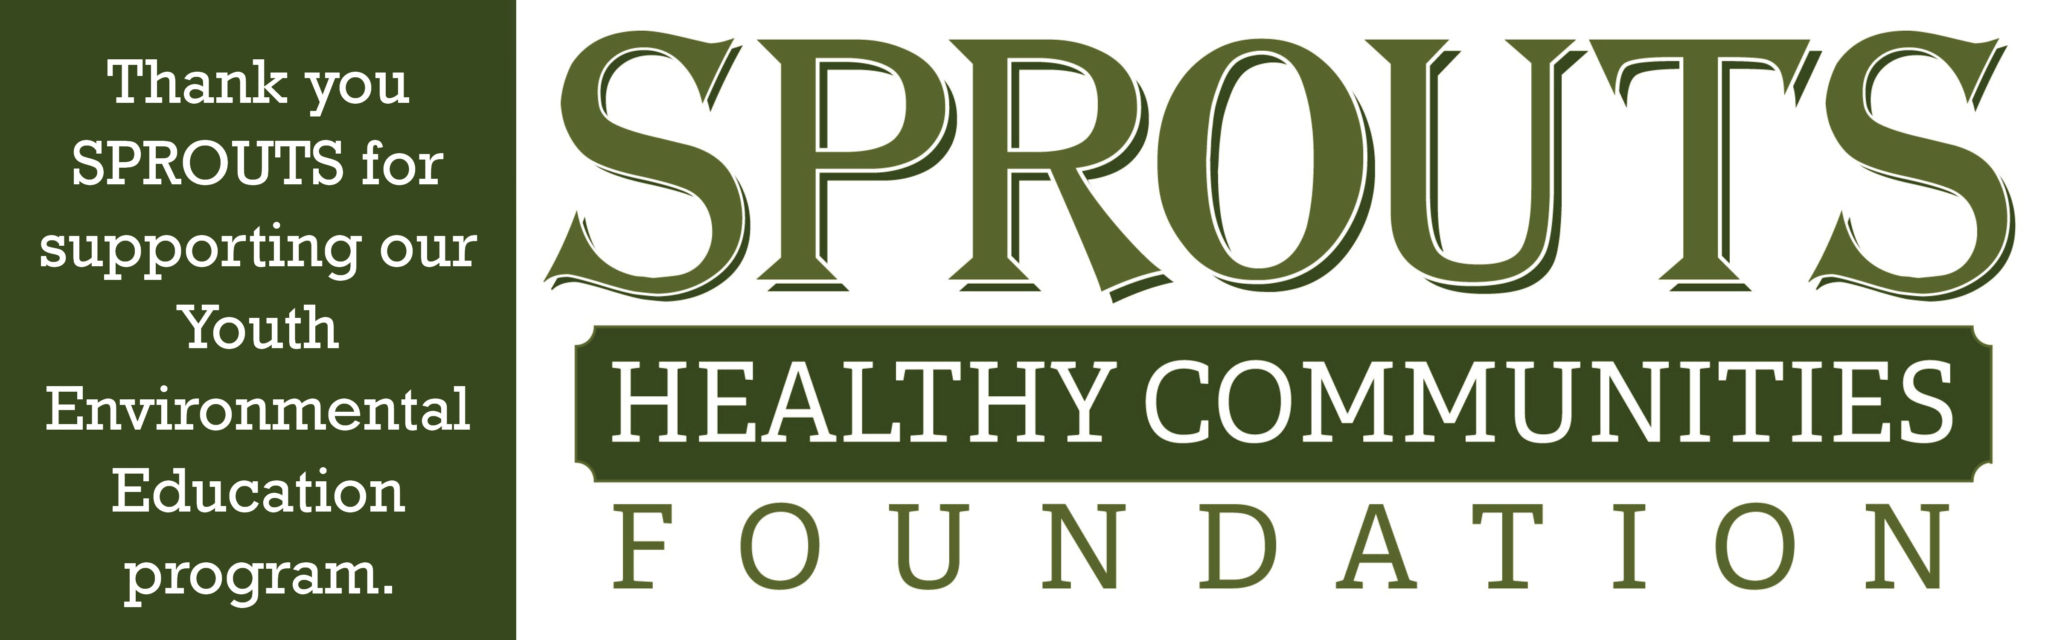 Sprouts banner